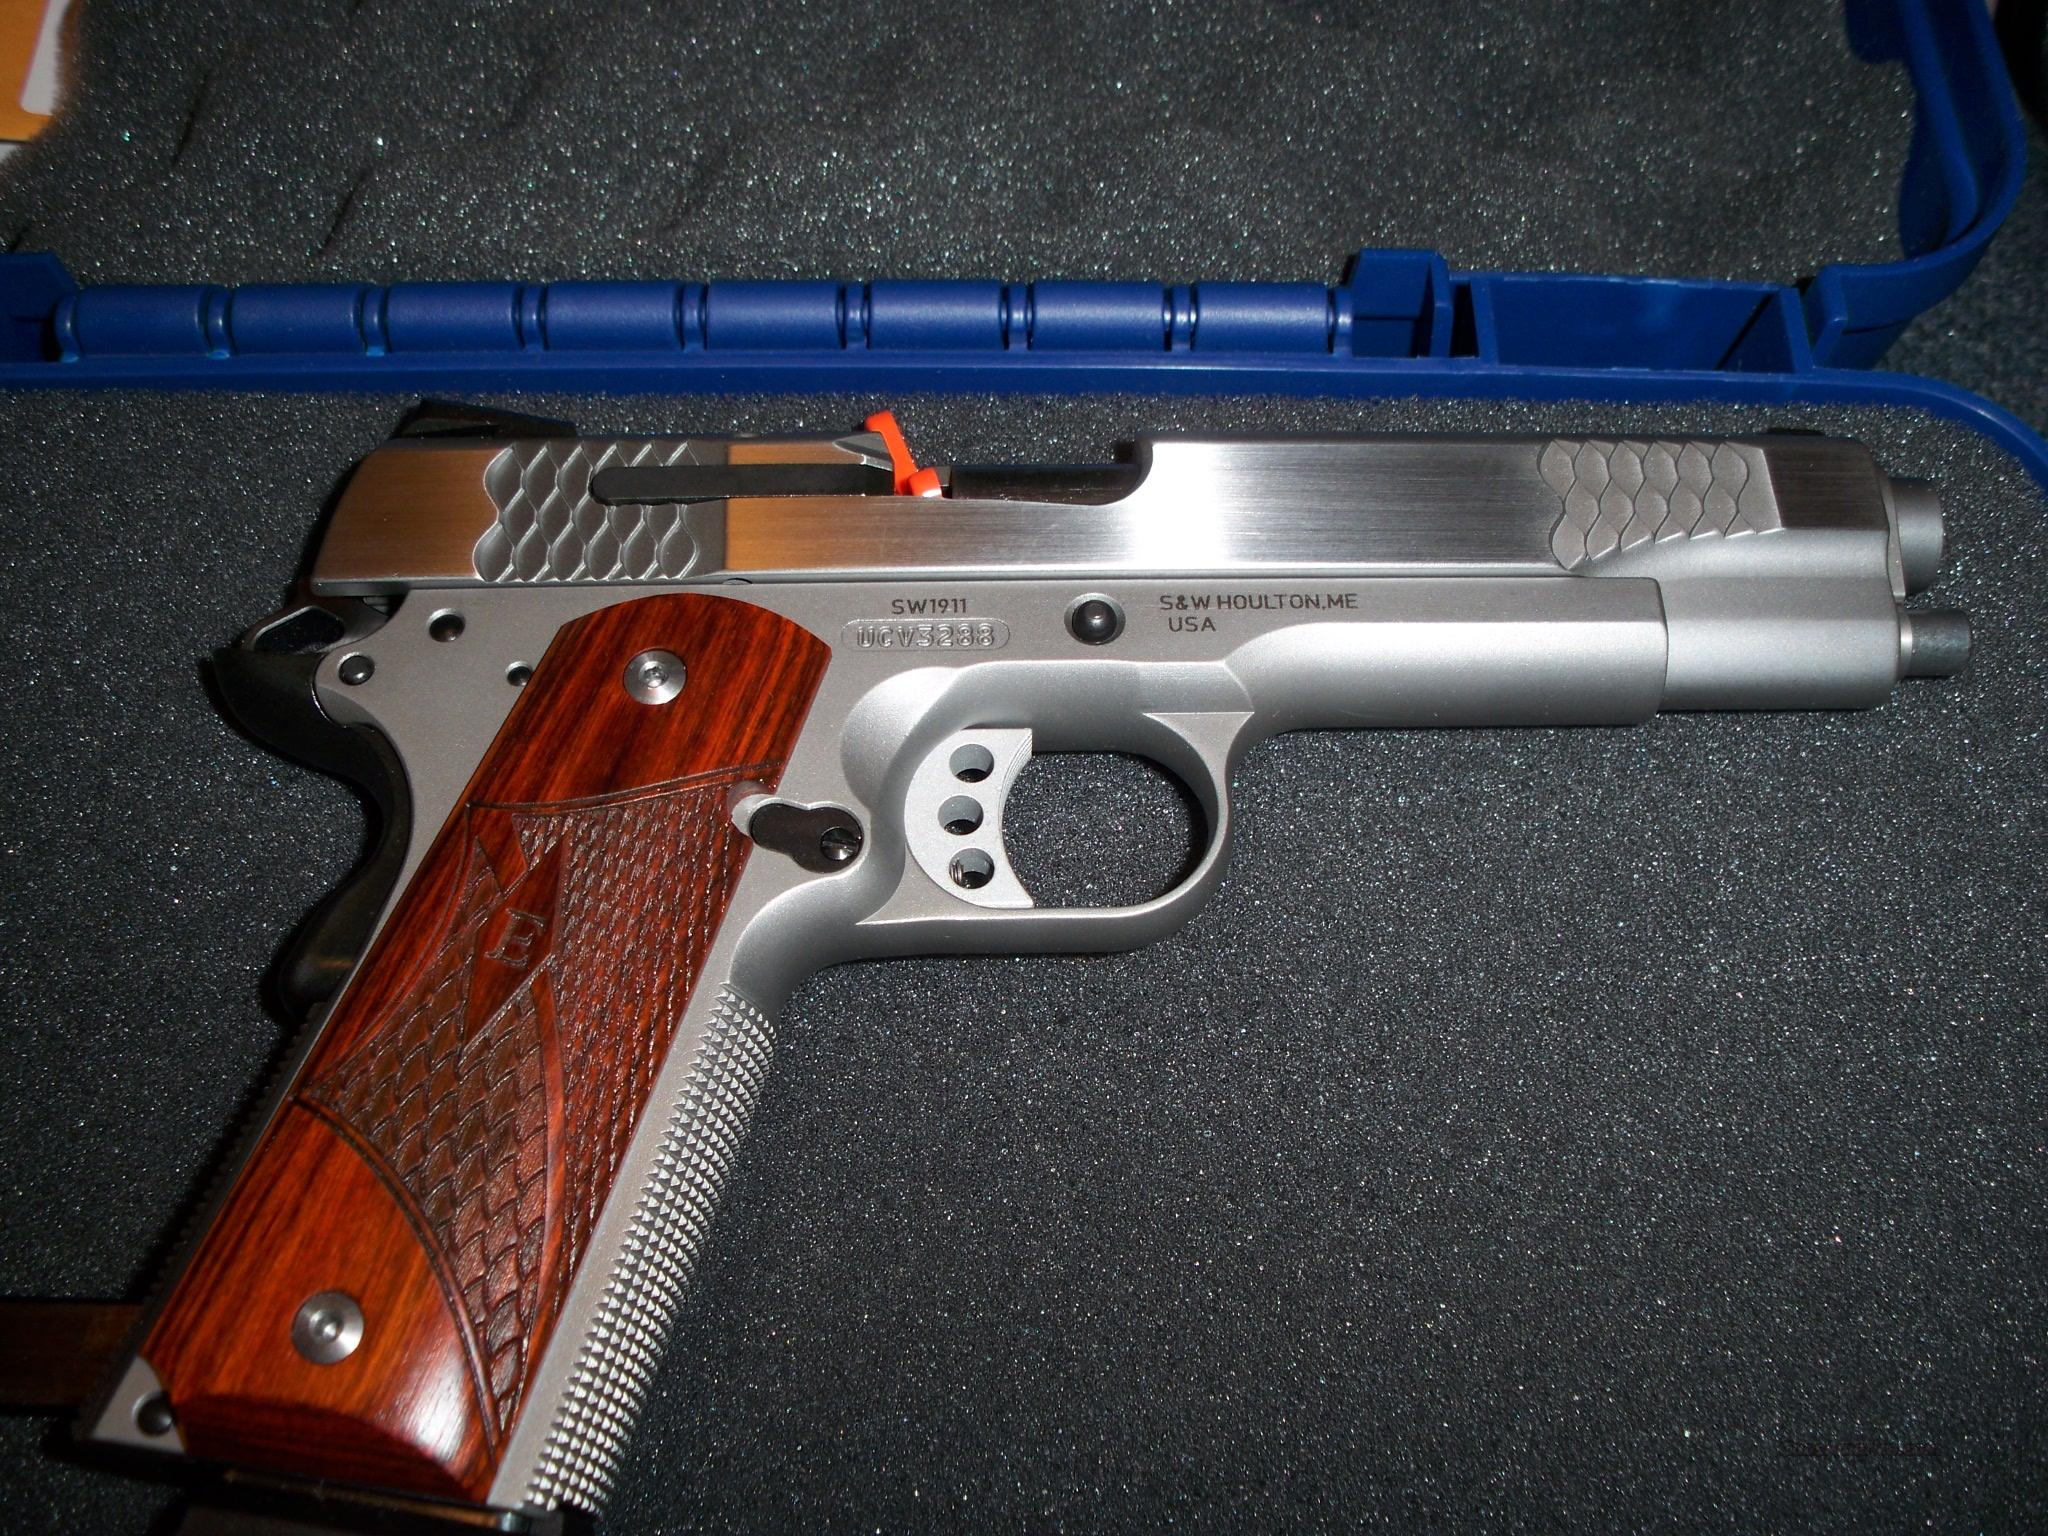 SMITH & WESSON 1911 E SERIES 45 ACP  Guns > Pistols > Smith & Wesson Pistols - Autos > Steel Frame